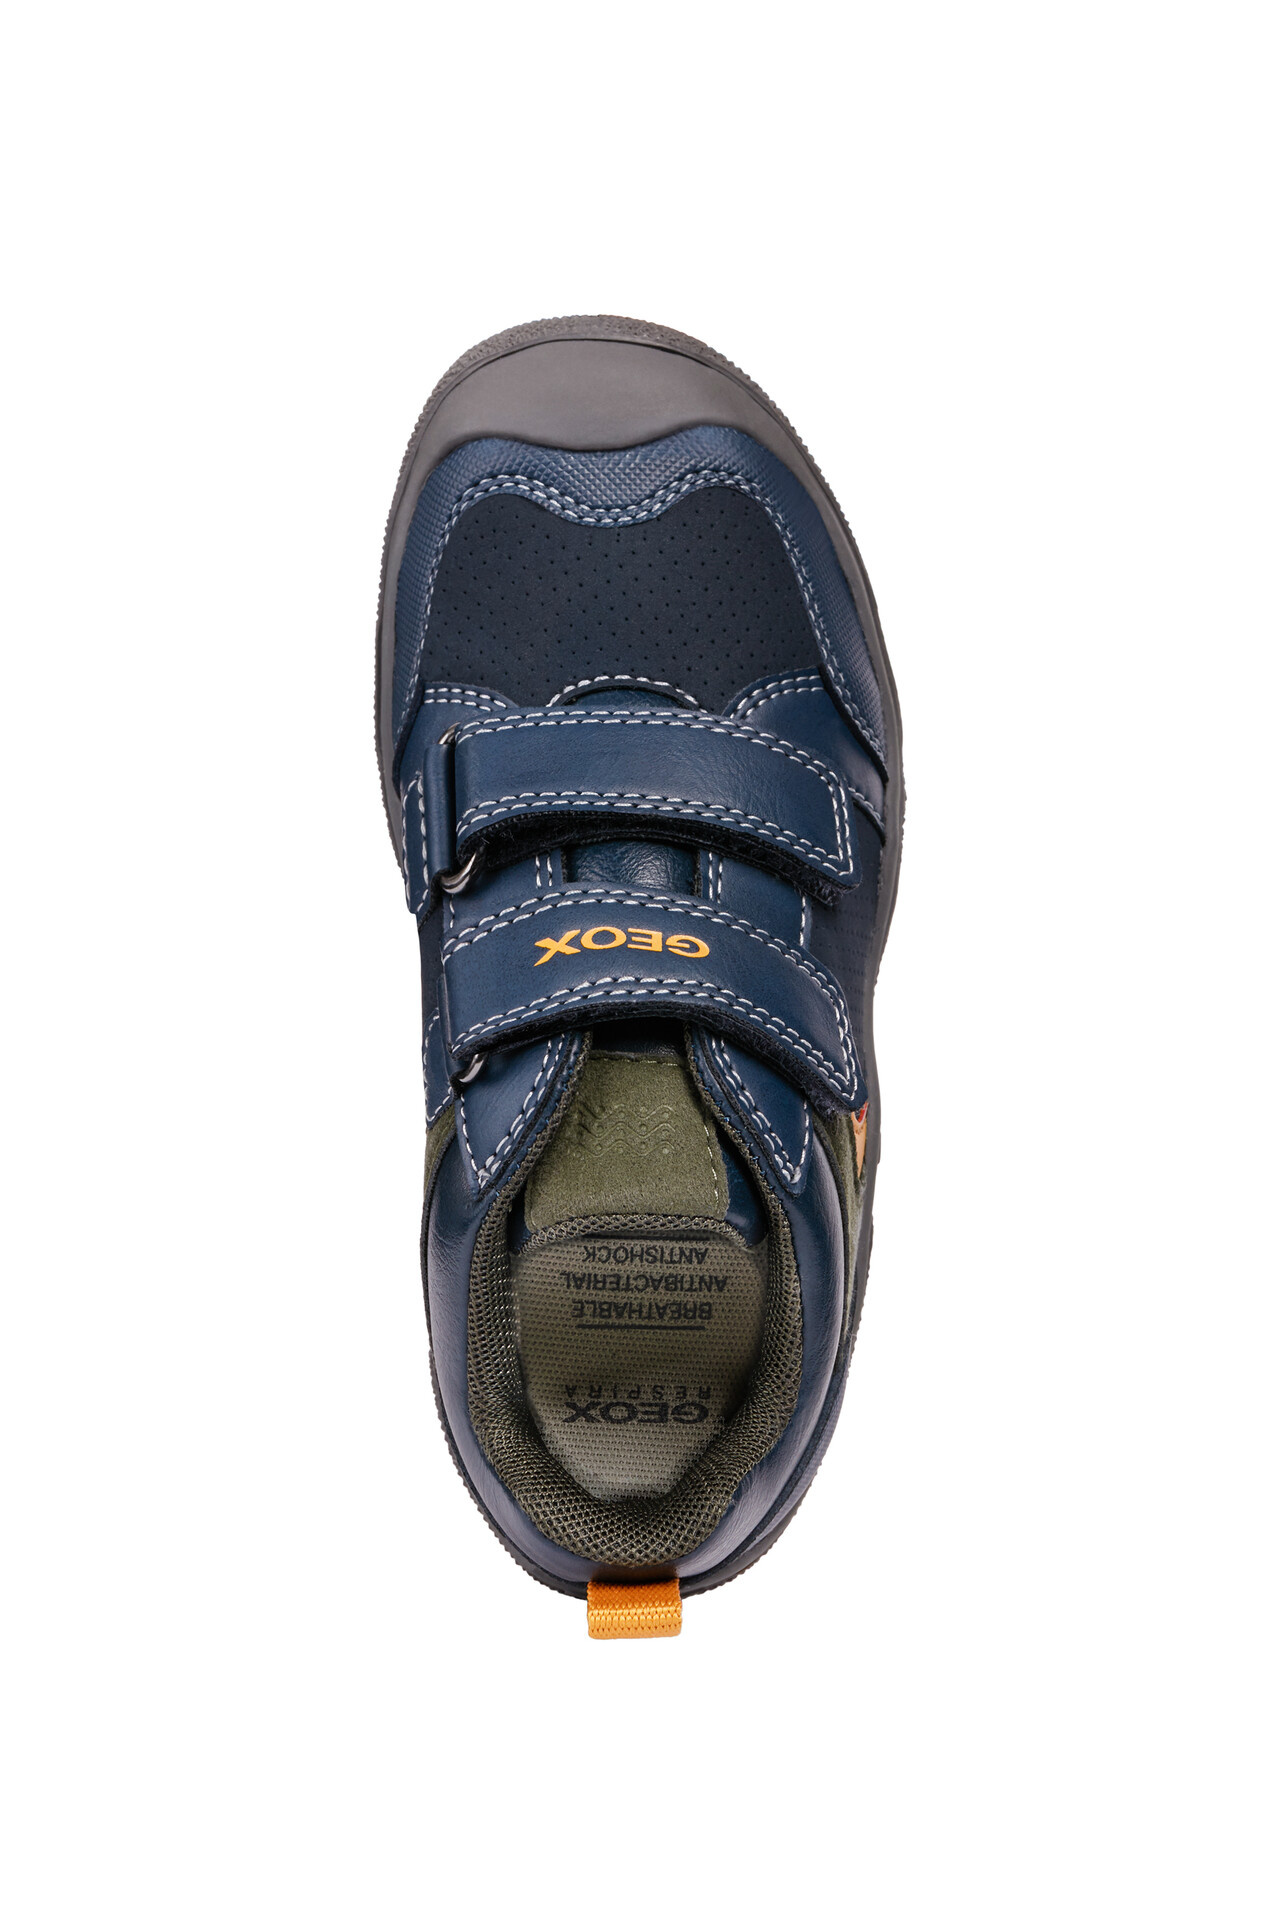 Geox Artach Navy Yellow